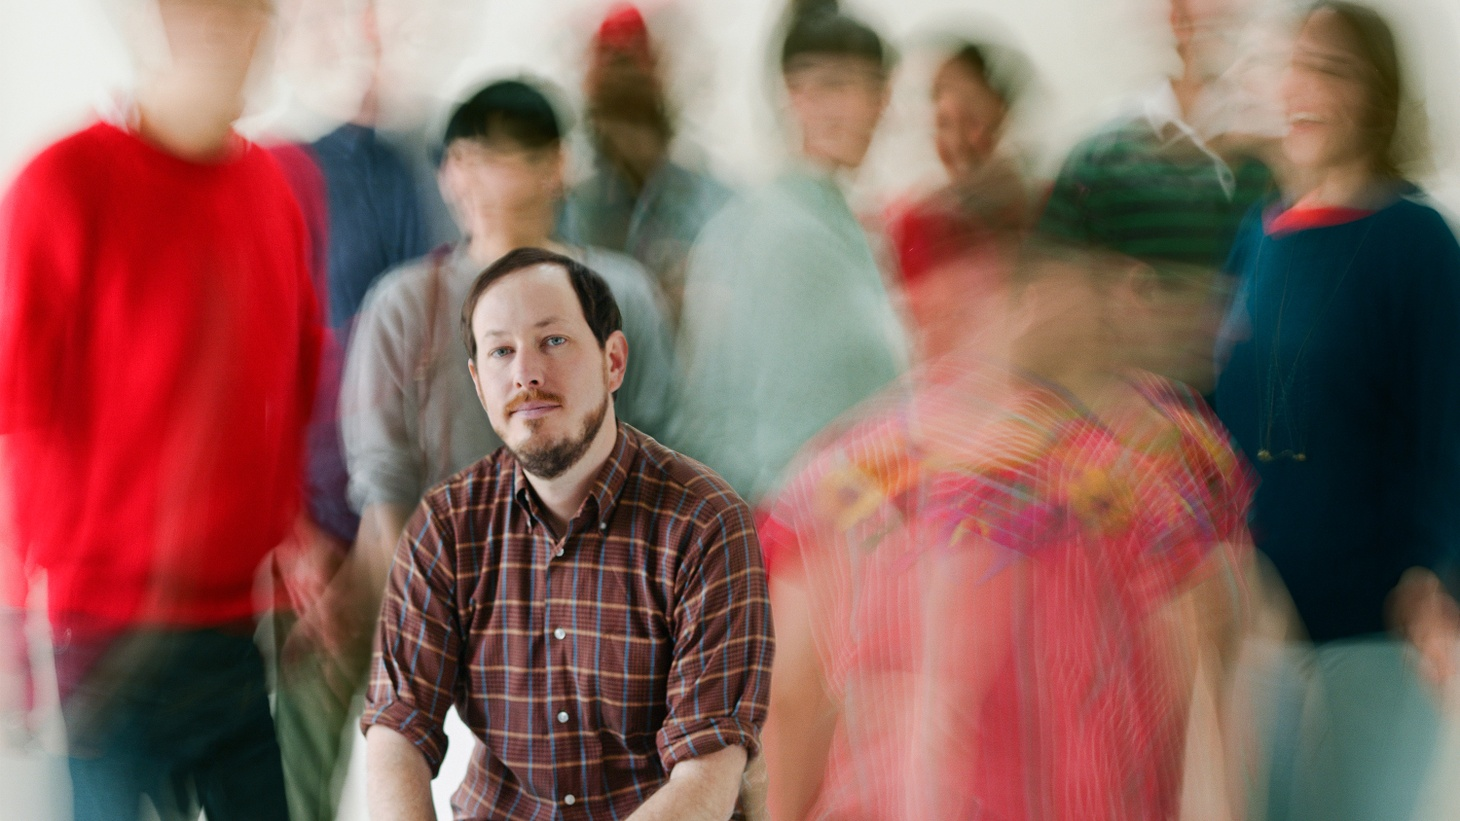 Vetiver frontman Andy Cabic is based in the Bay Area, but recorded his latest album in LA with longtime producer Thom Monahan.